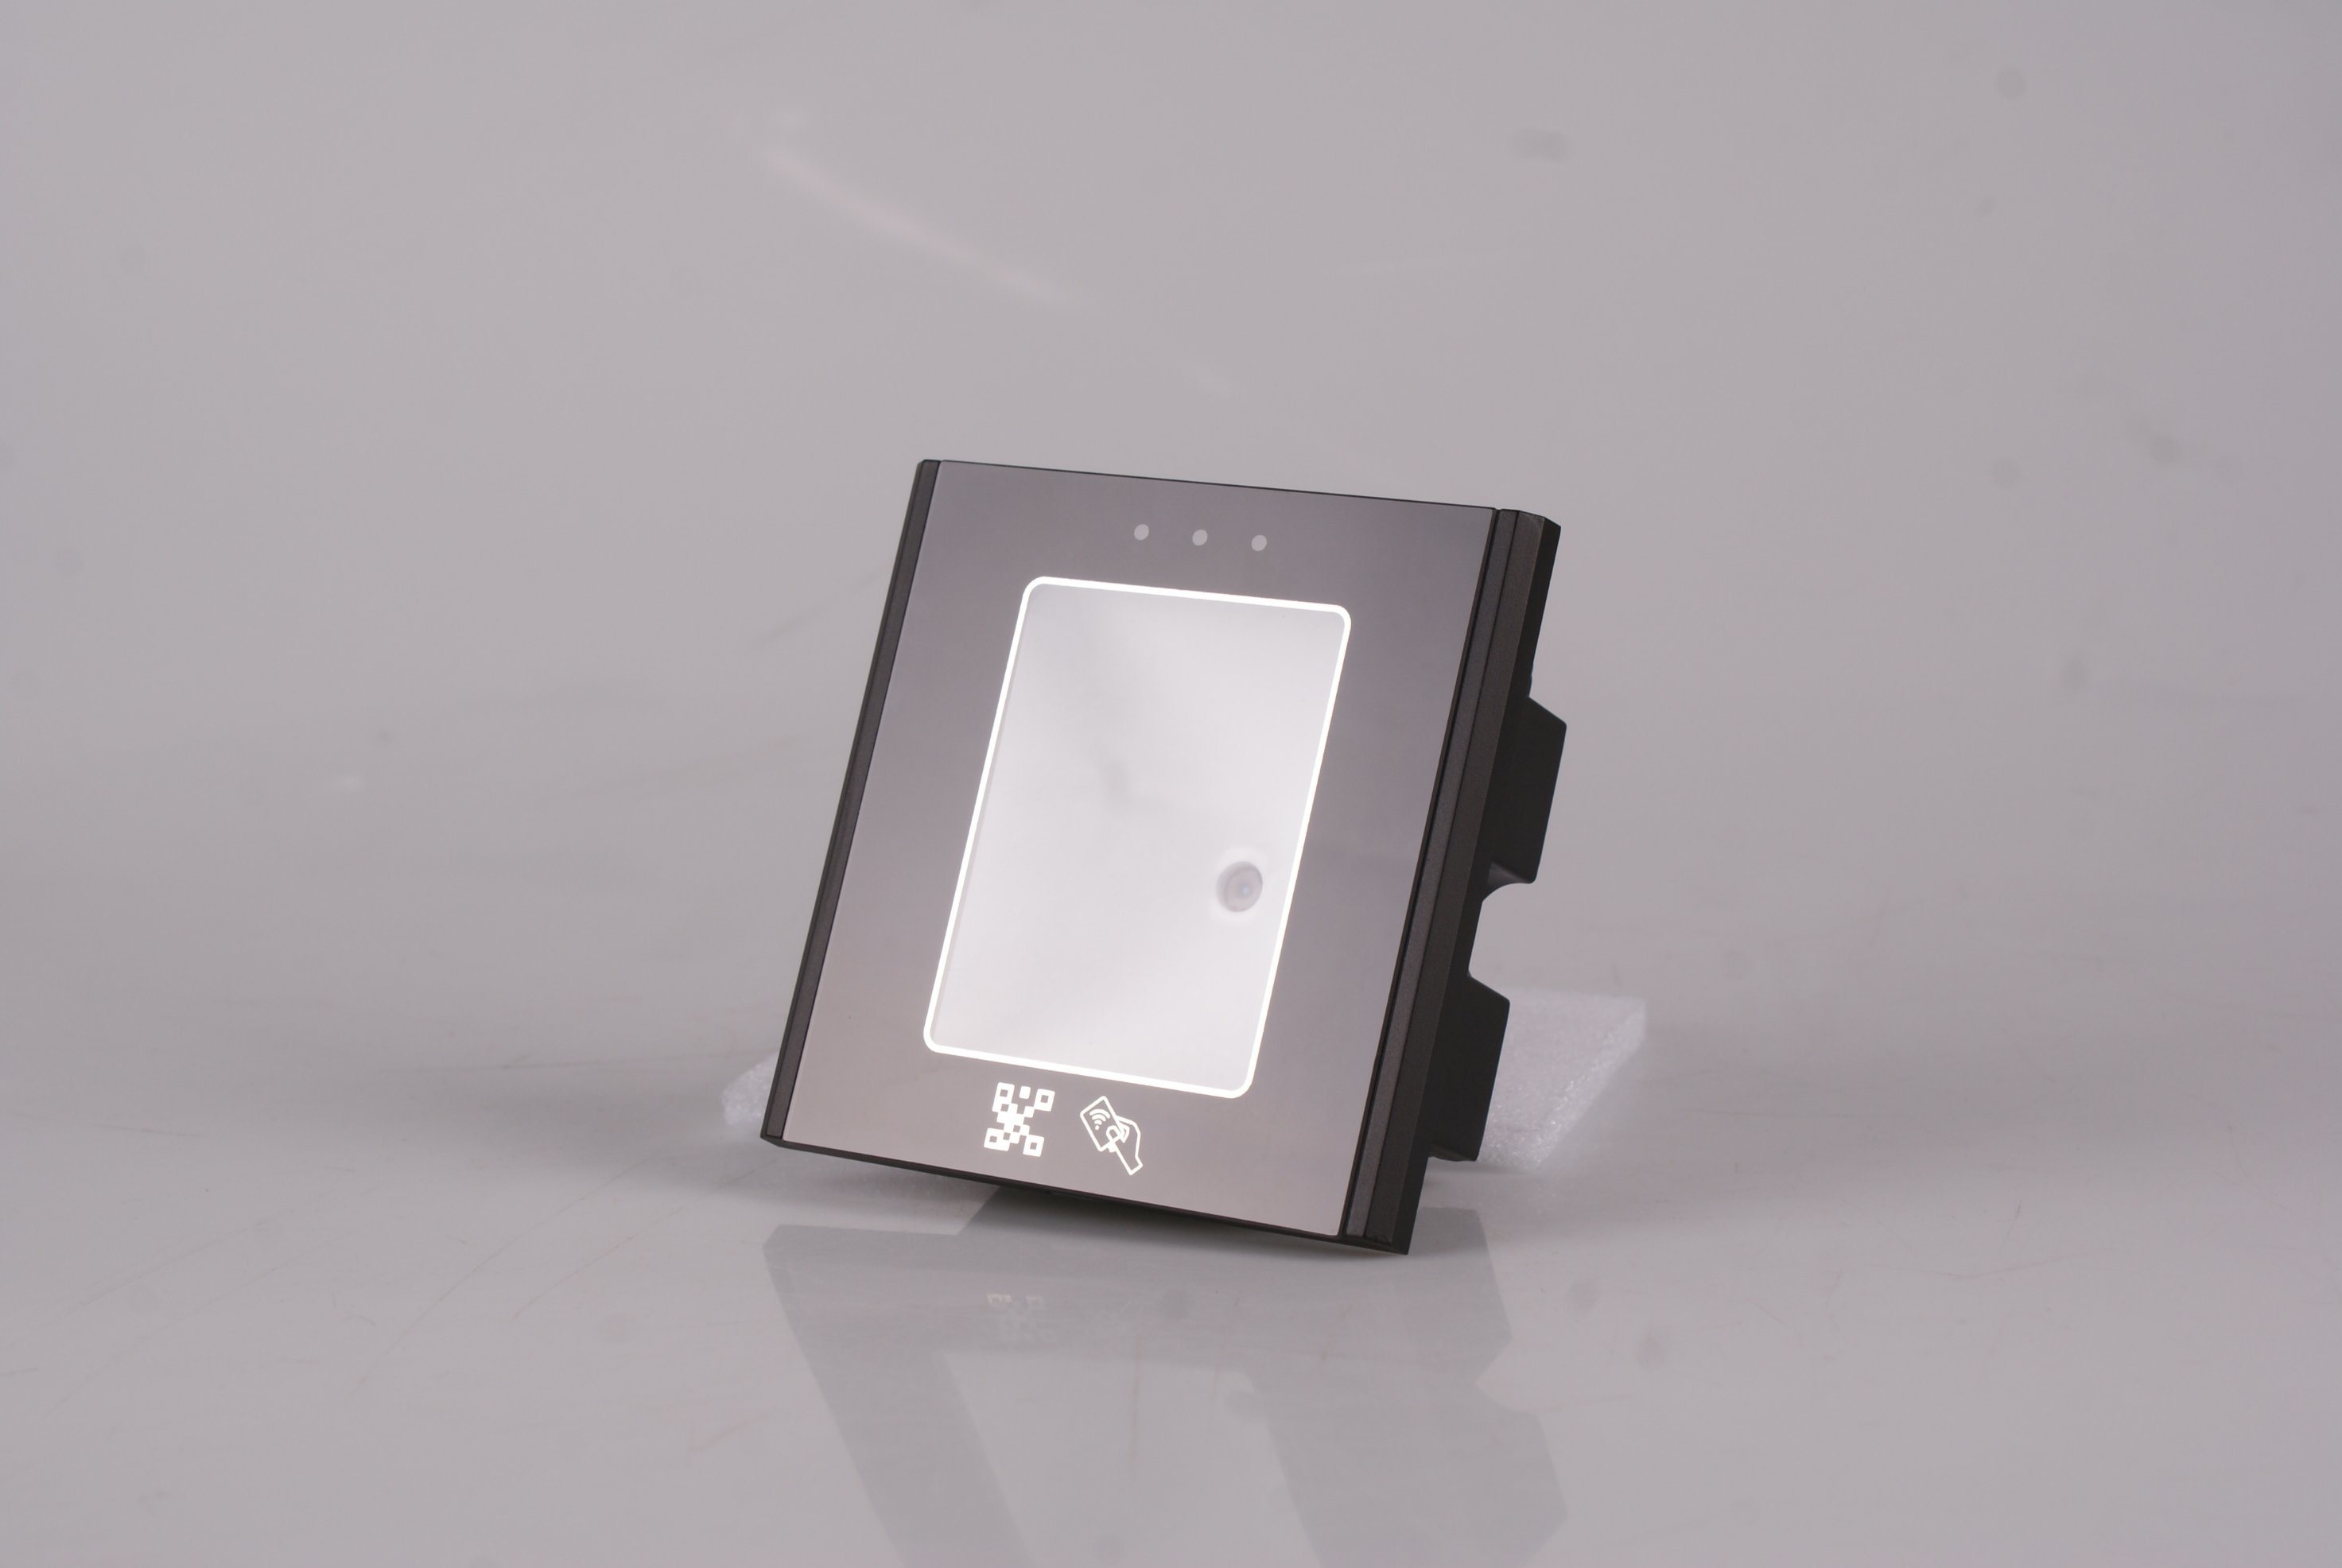 China Qr Code Scanner and Qr Code Reader and MIFARE Card Reader